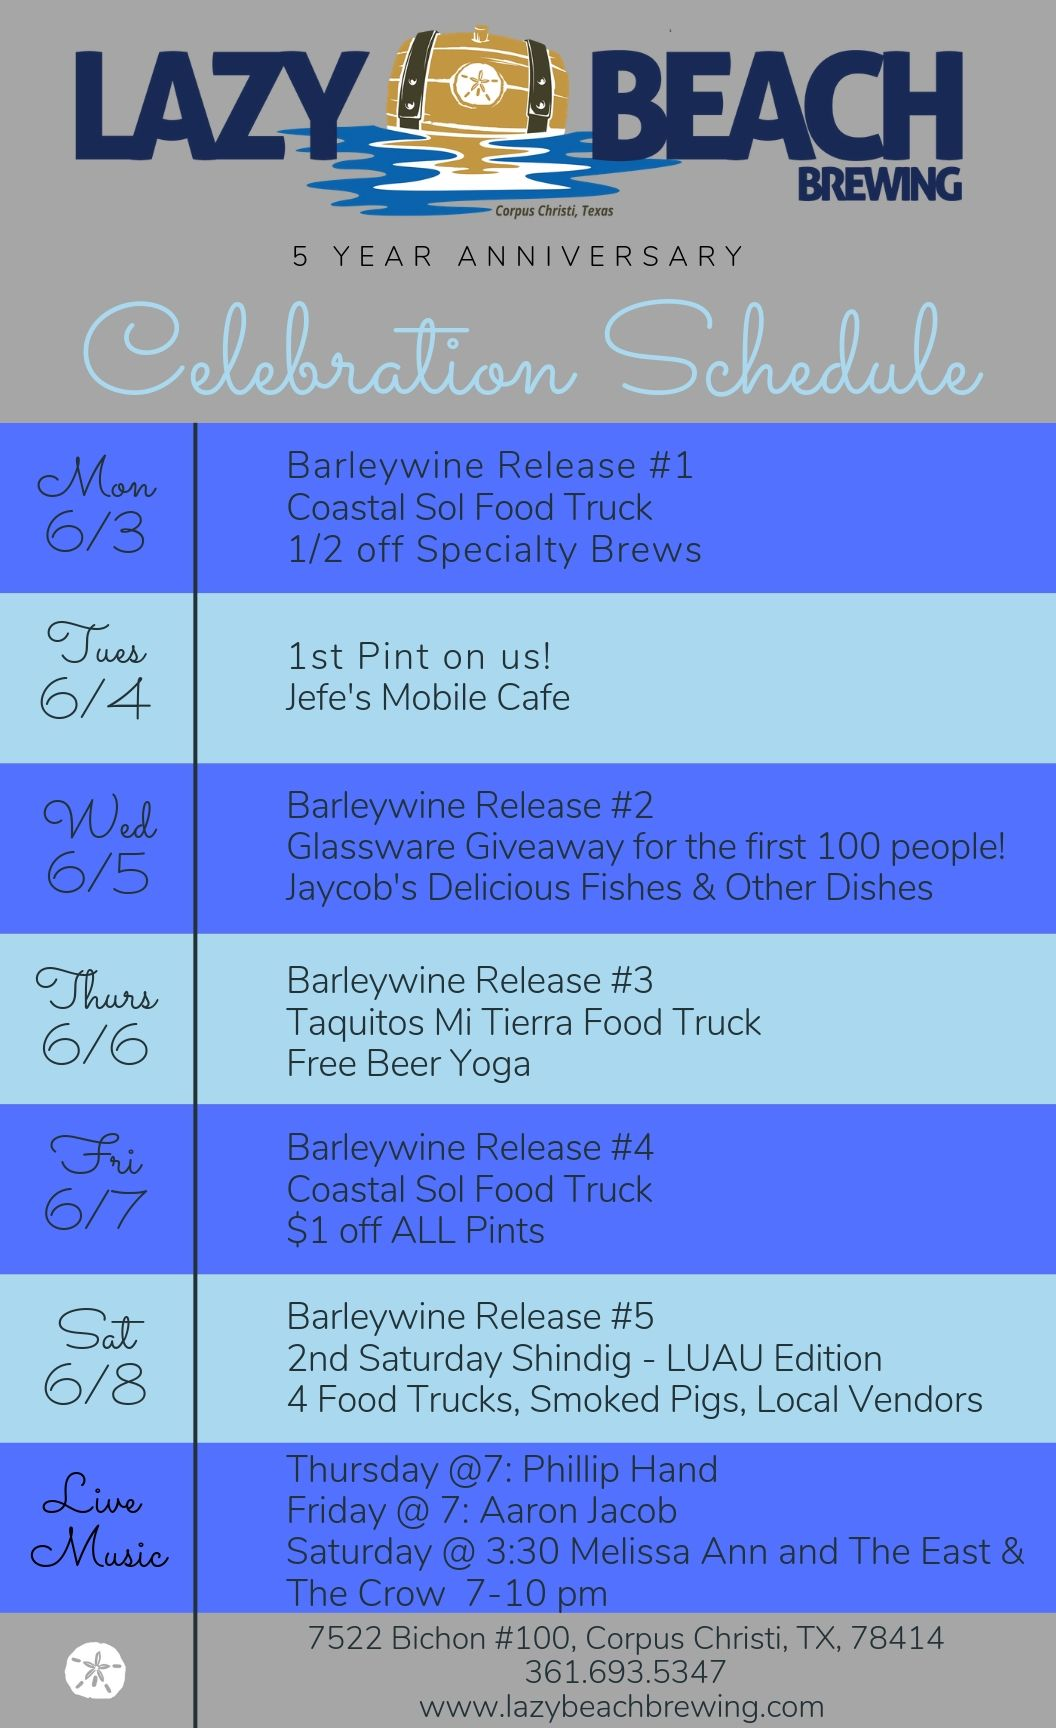 5 Year Celebration Schedule!